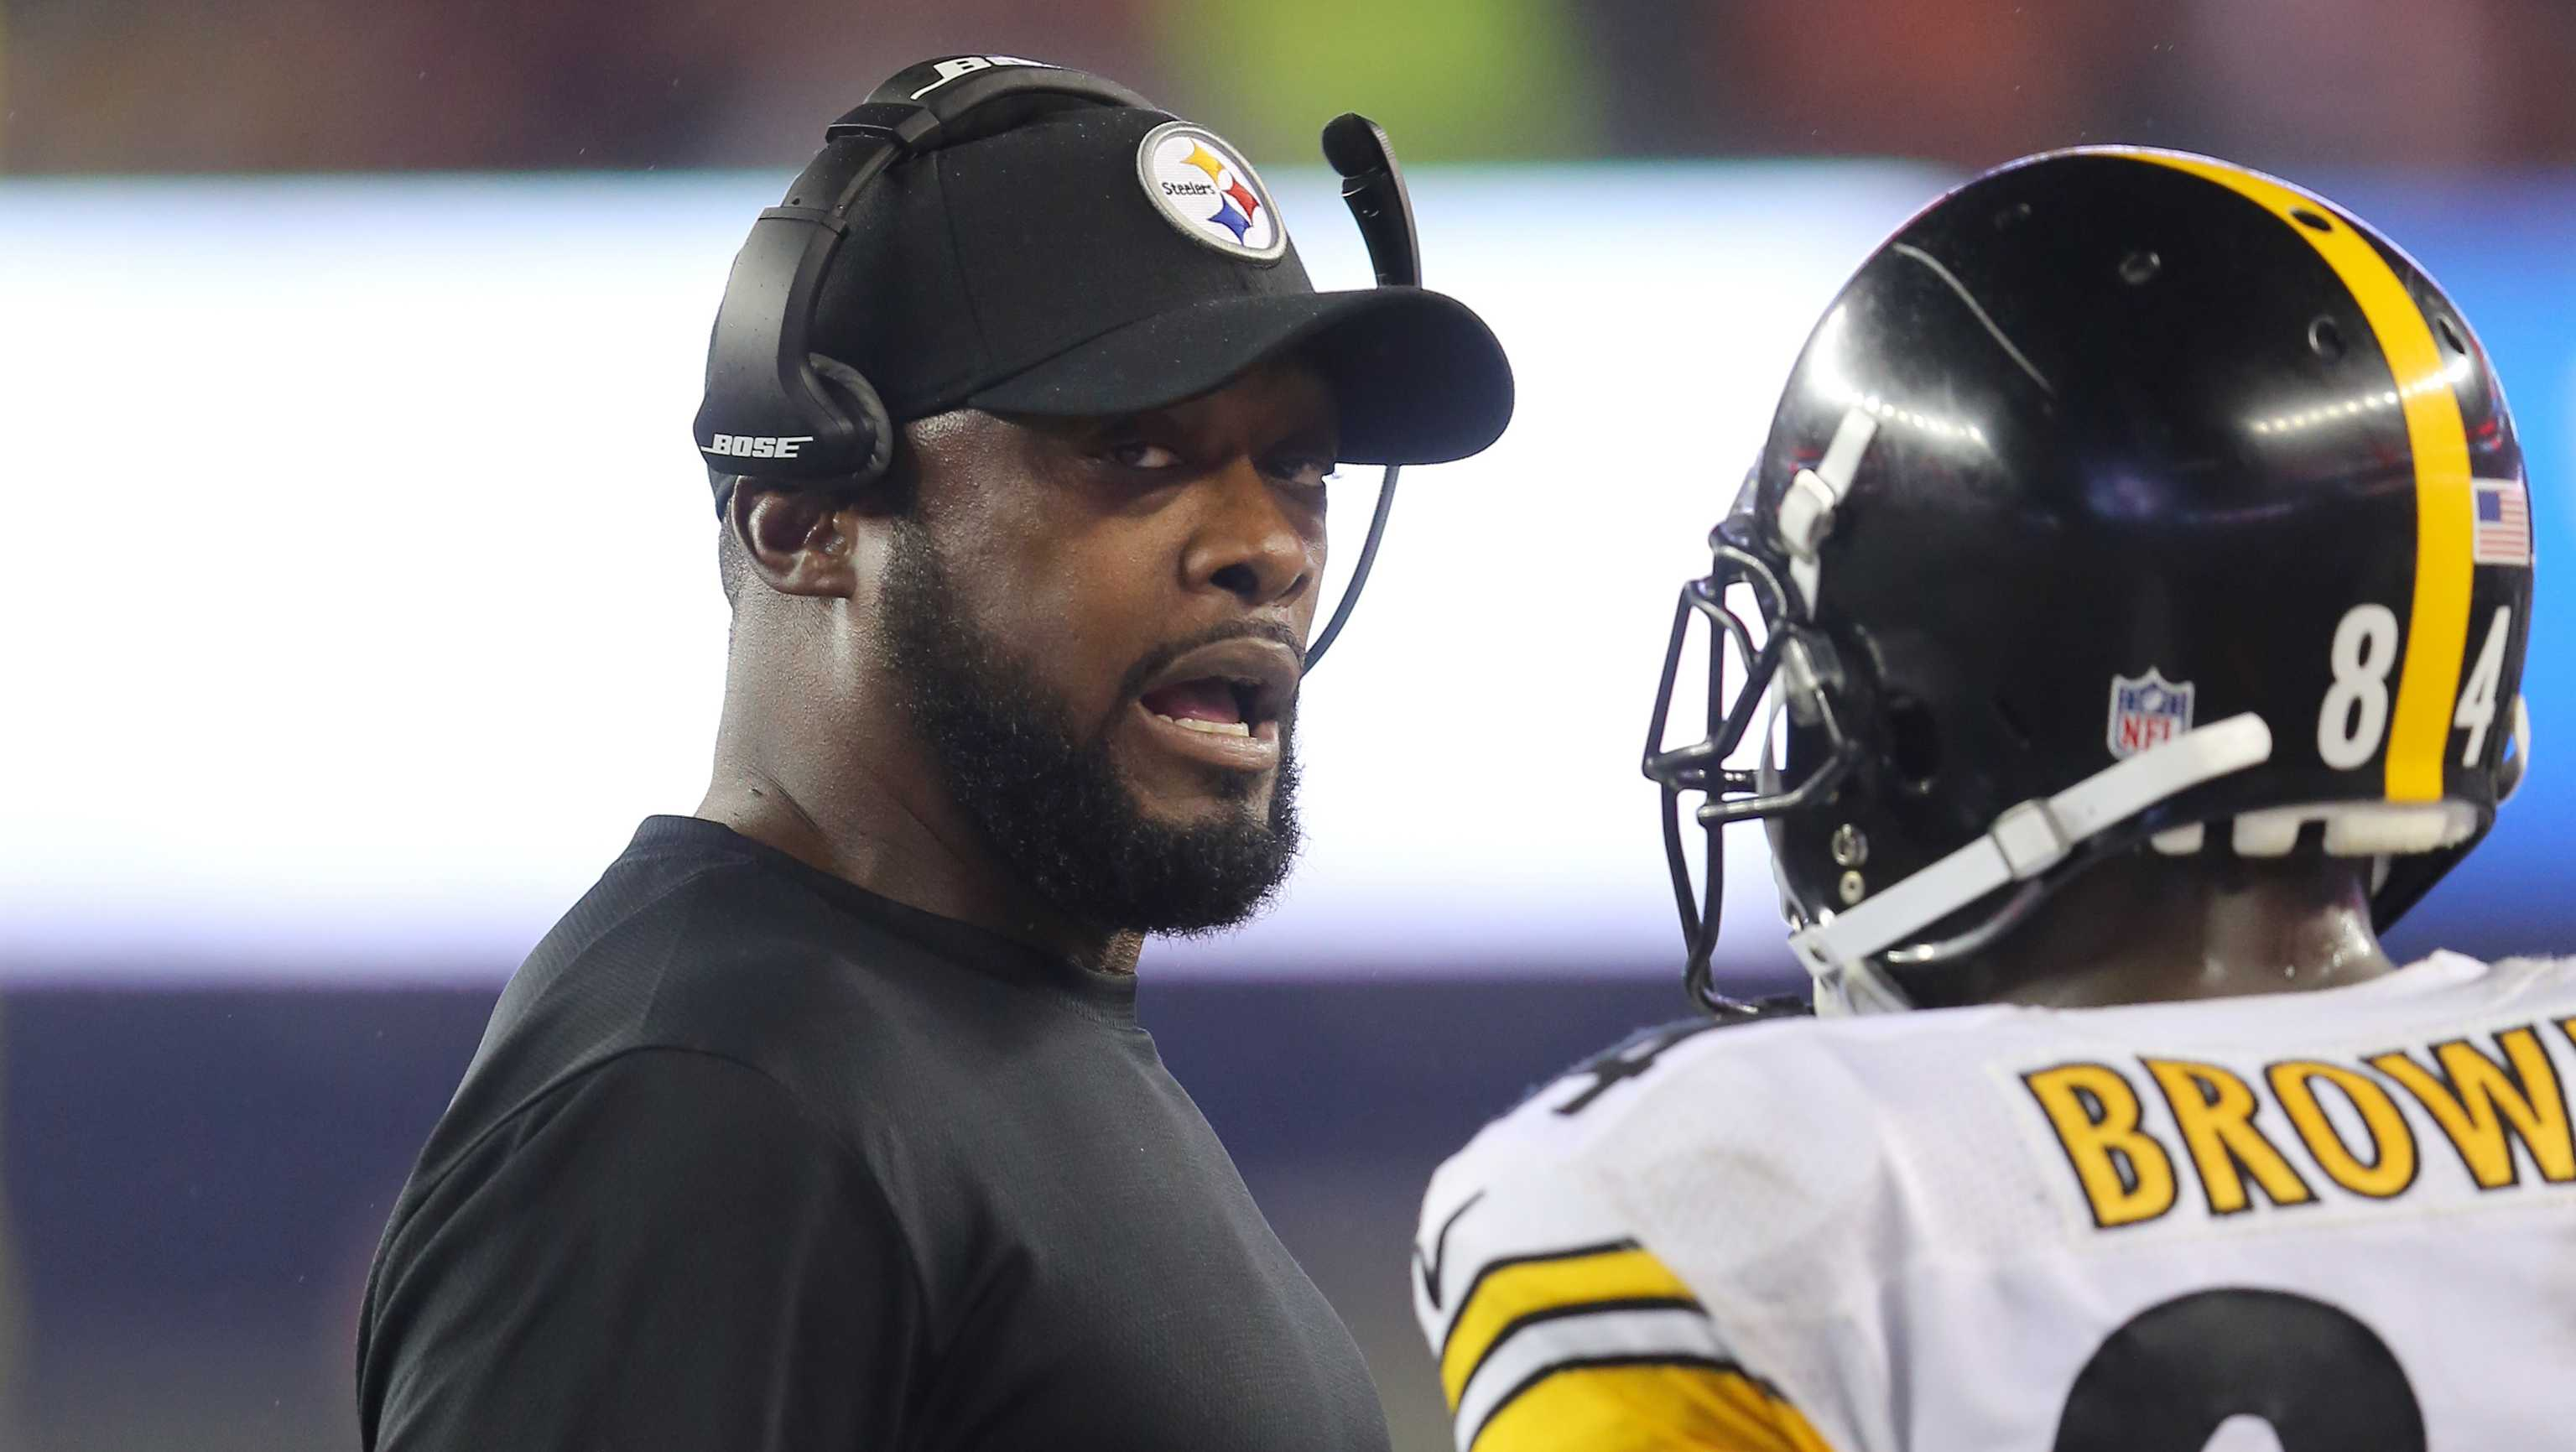 Pittsburgh Steelers head coach Mike Tomlin is seen with Antonio Brown #84 on the sidelines against the New England Patriots during an NFL football game, Thursday, Sept. 10, 2015, in Foxborough, Mass.